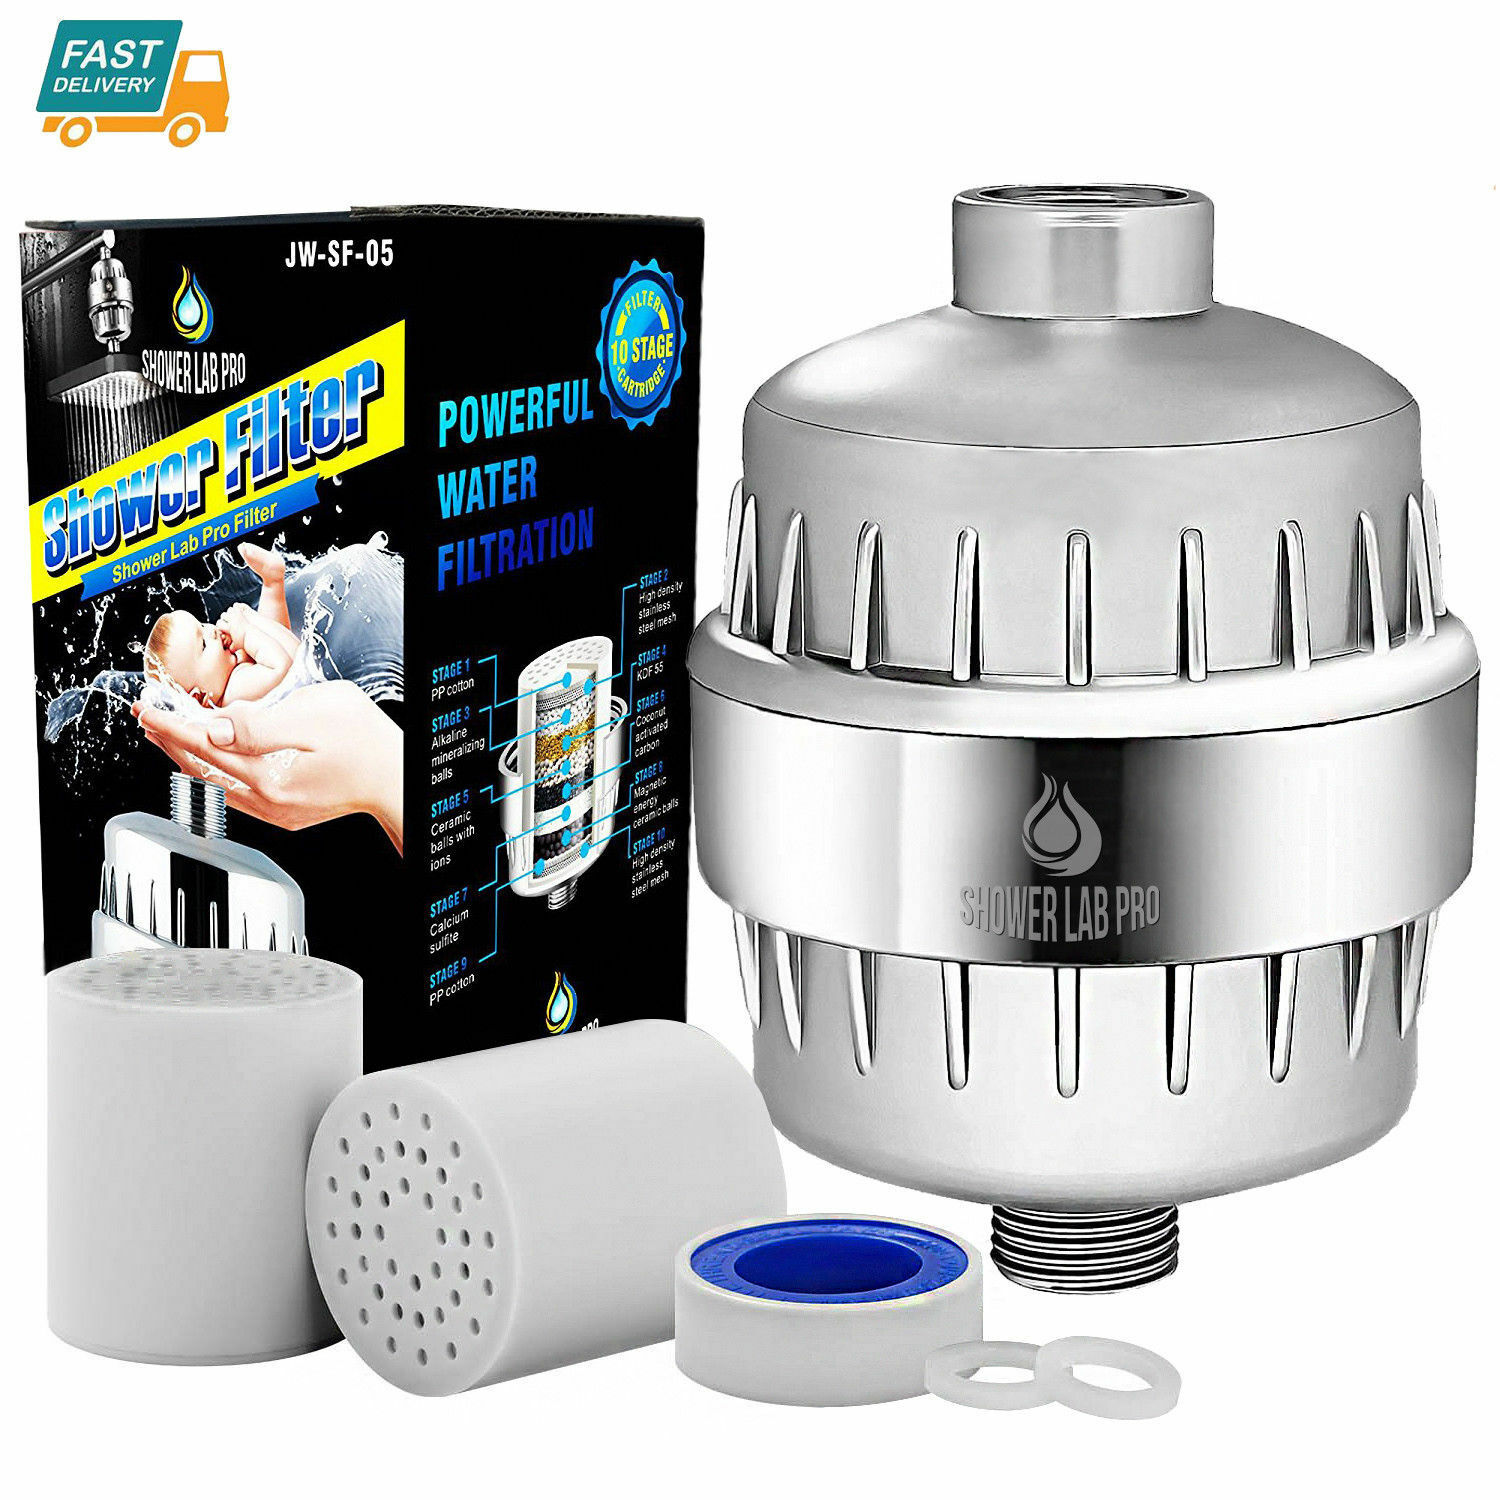 Shower Lab Pro 10-Stage Shower Water Filter with 2 Cartridge